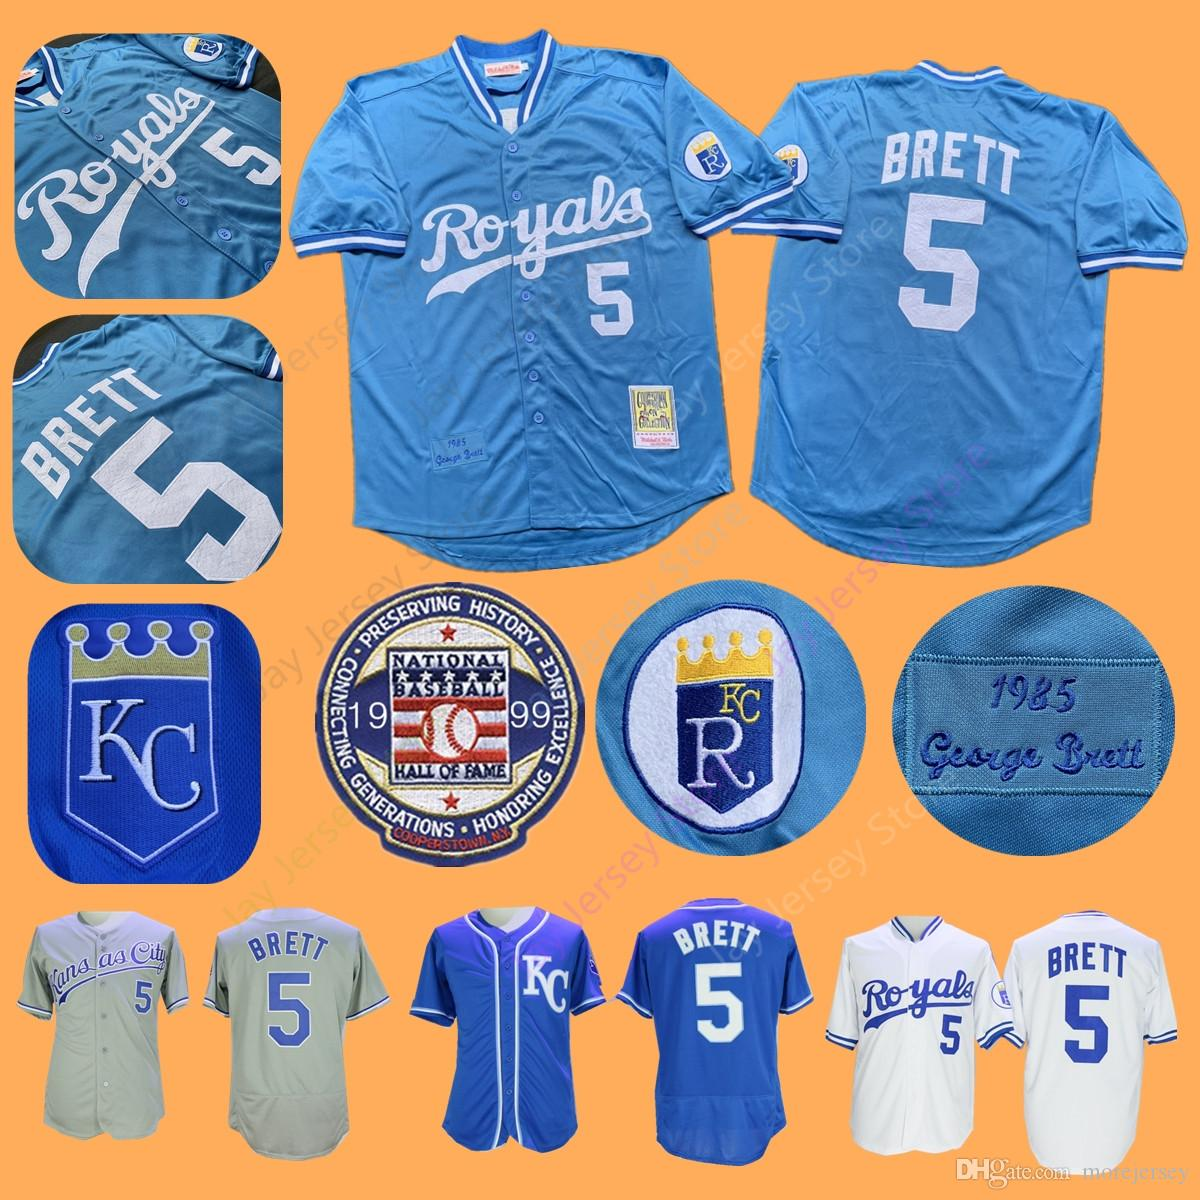 7e647e0f 2019 Royals 1985 George Brett Jersey With 1999 Hall Of Fame Patch  Cooperstown Royals Home Away Blue White All Stitched From Morejersey,  $16.26 | DHgate.Com